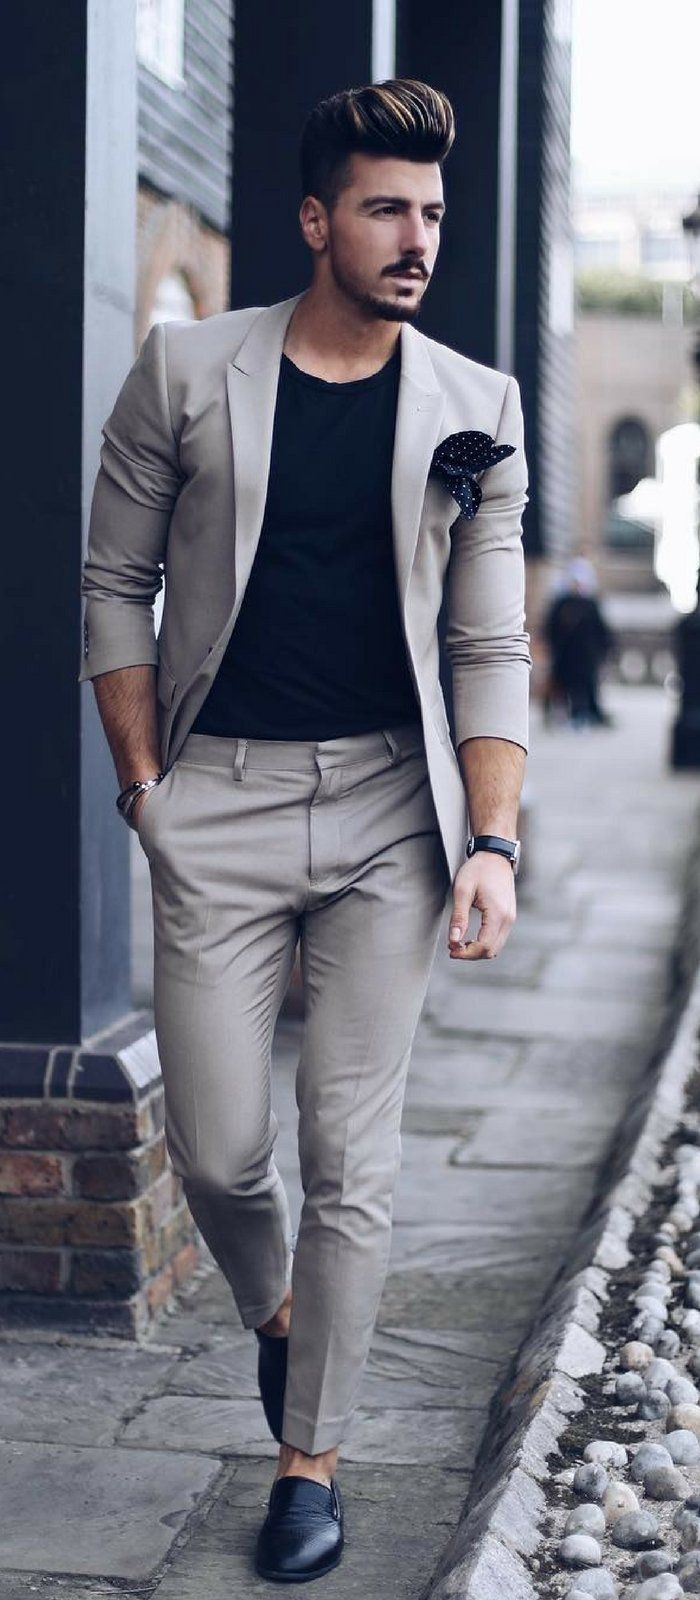 Casual elegant for men outfits composition ideas forecasting to wear for winter in 2019